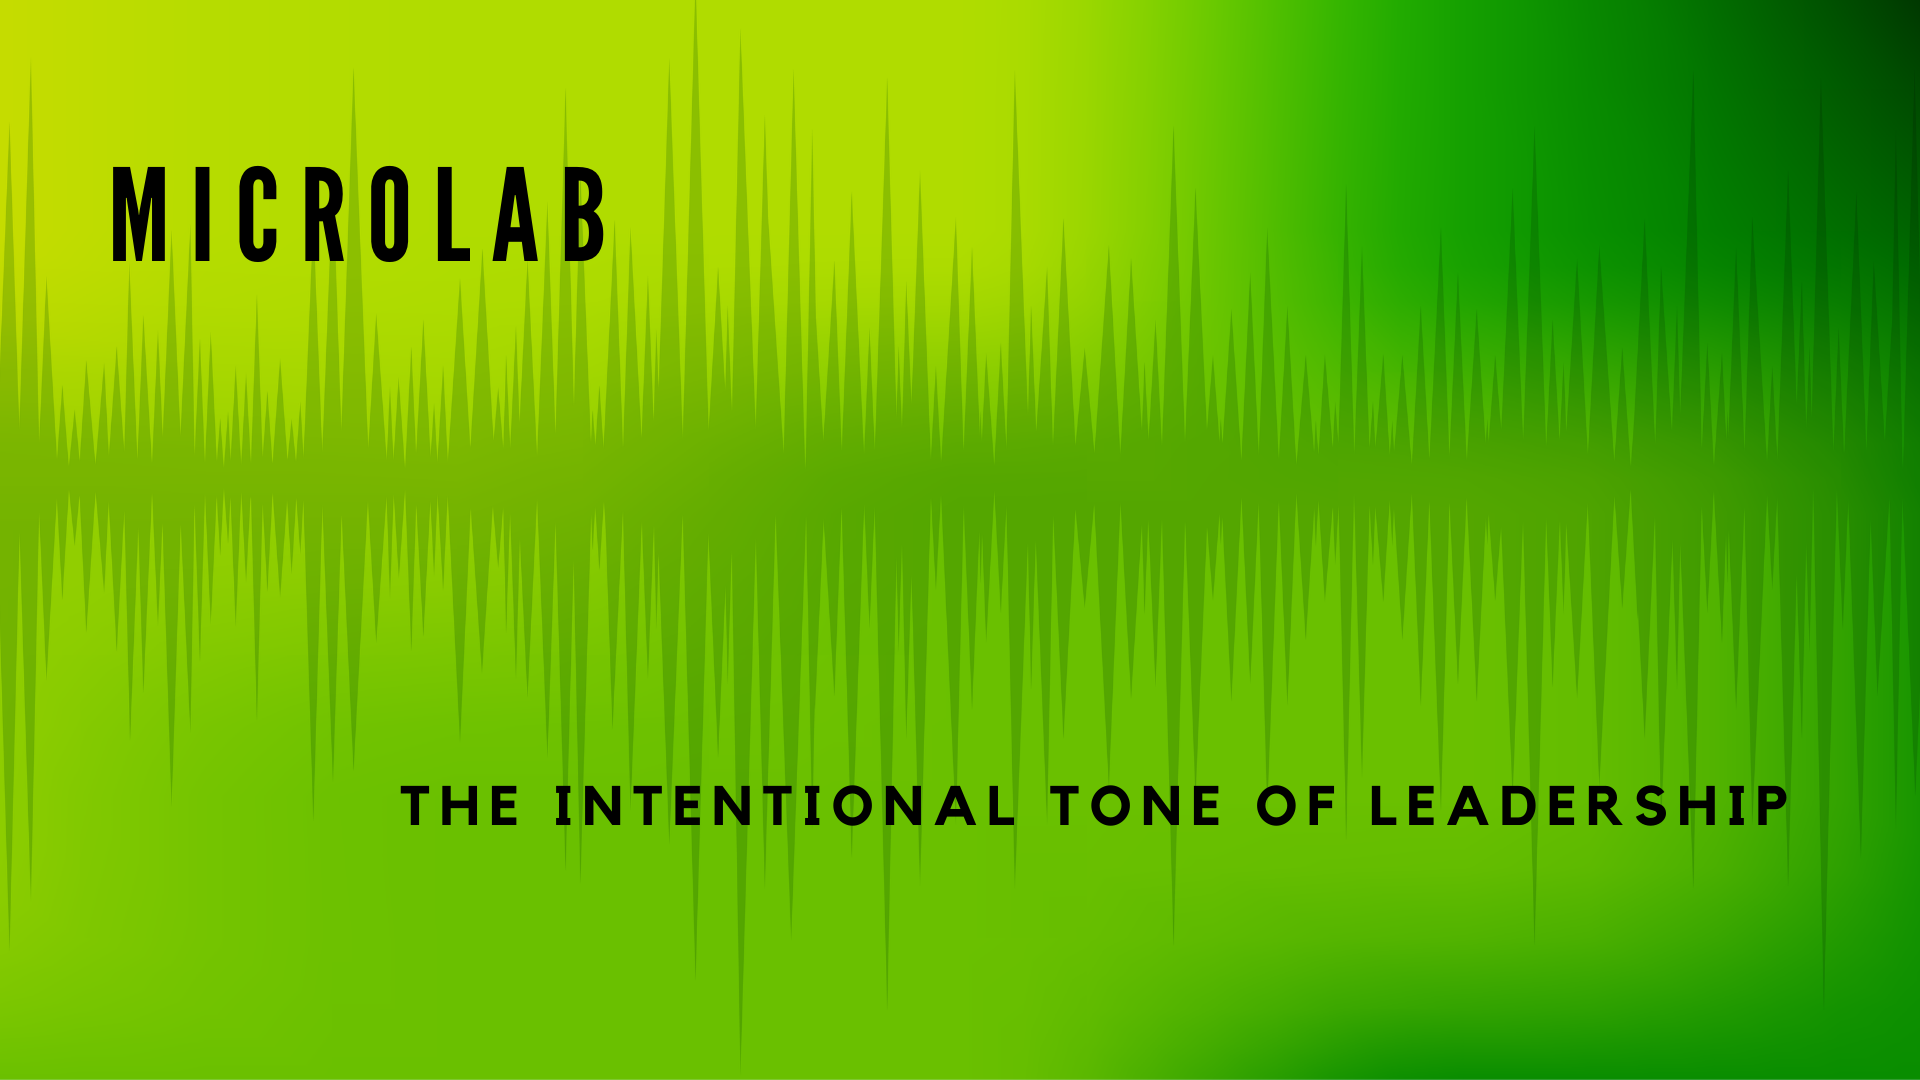 MicroLab: What Is Your Tone Saying?